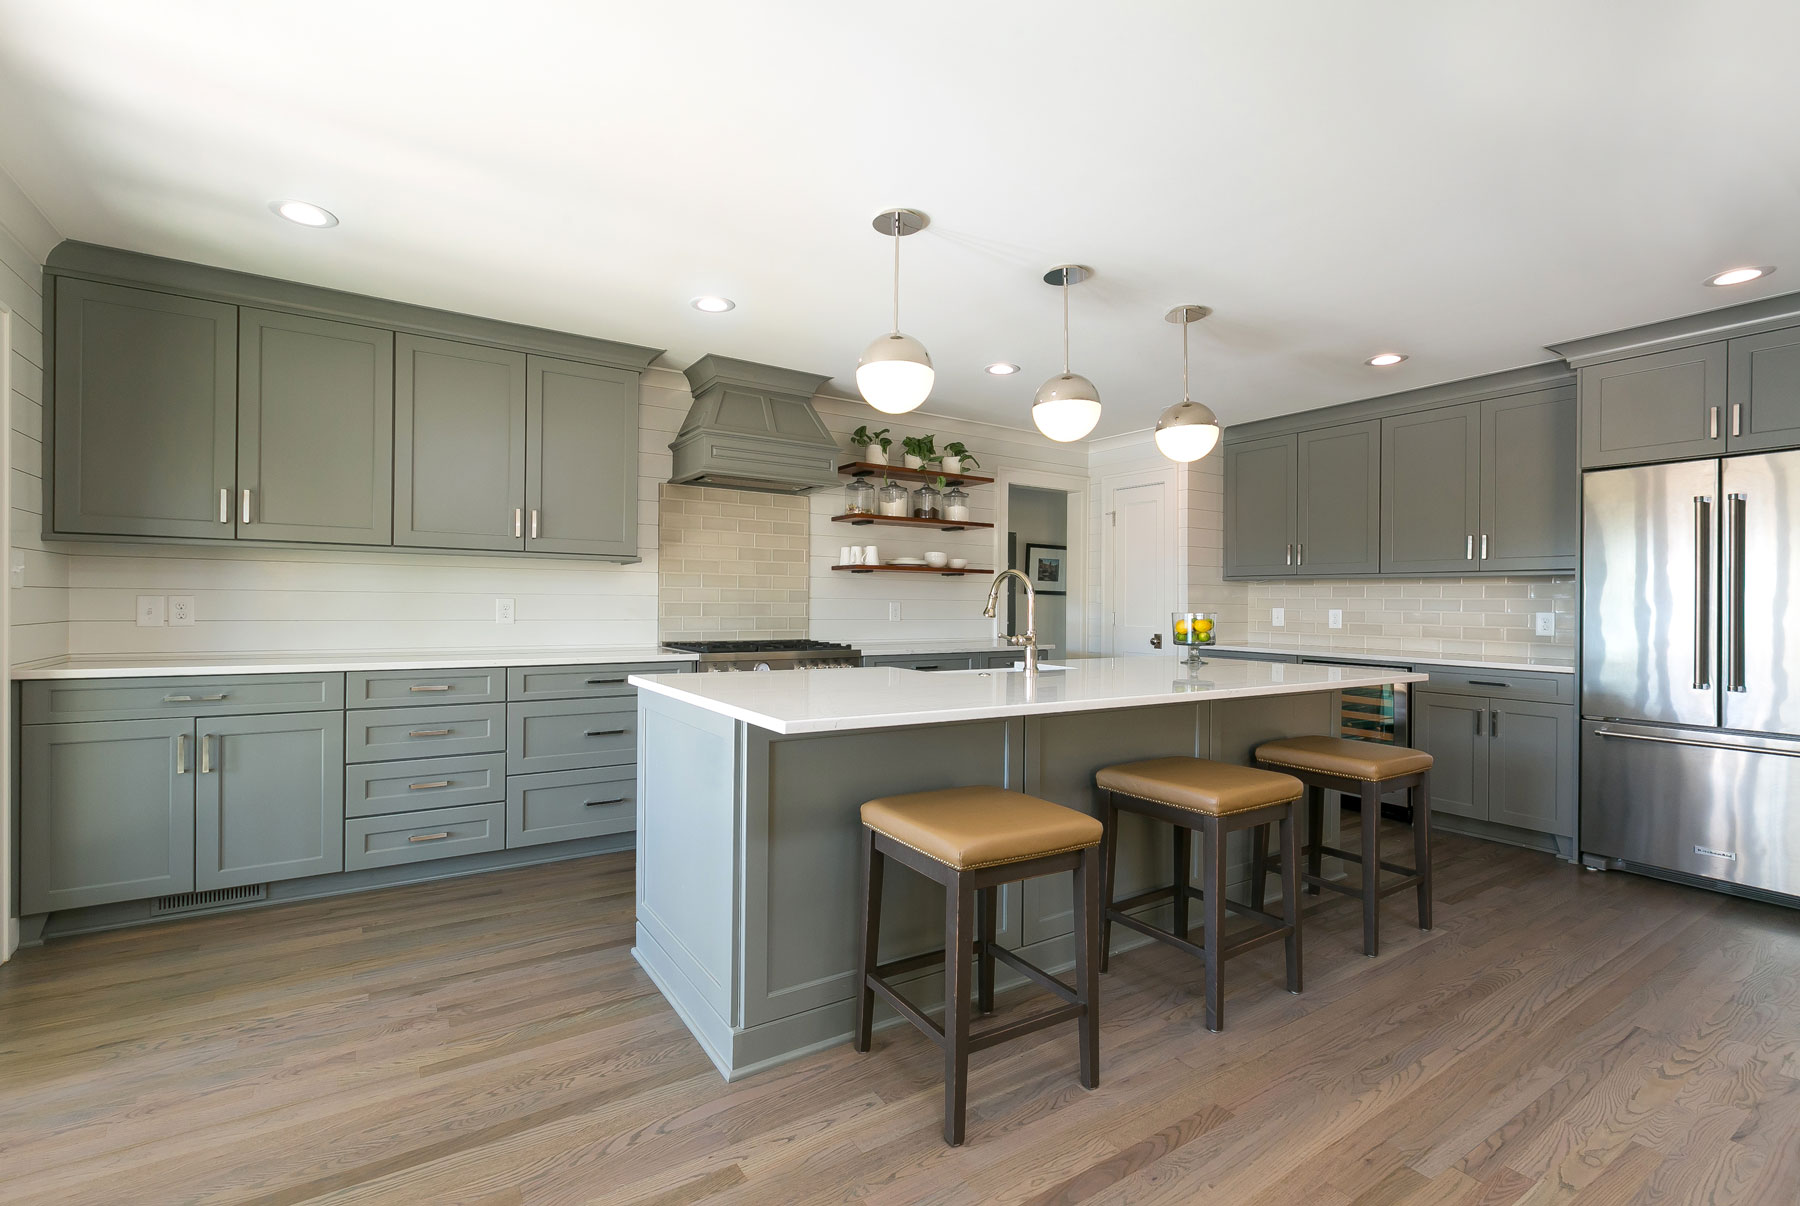 High end kitchen renovation on Sullivan's Island